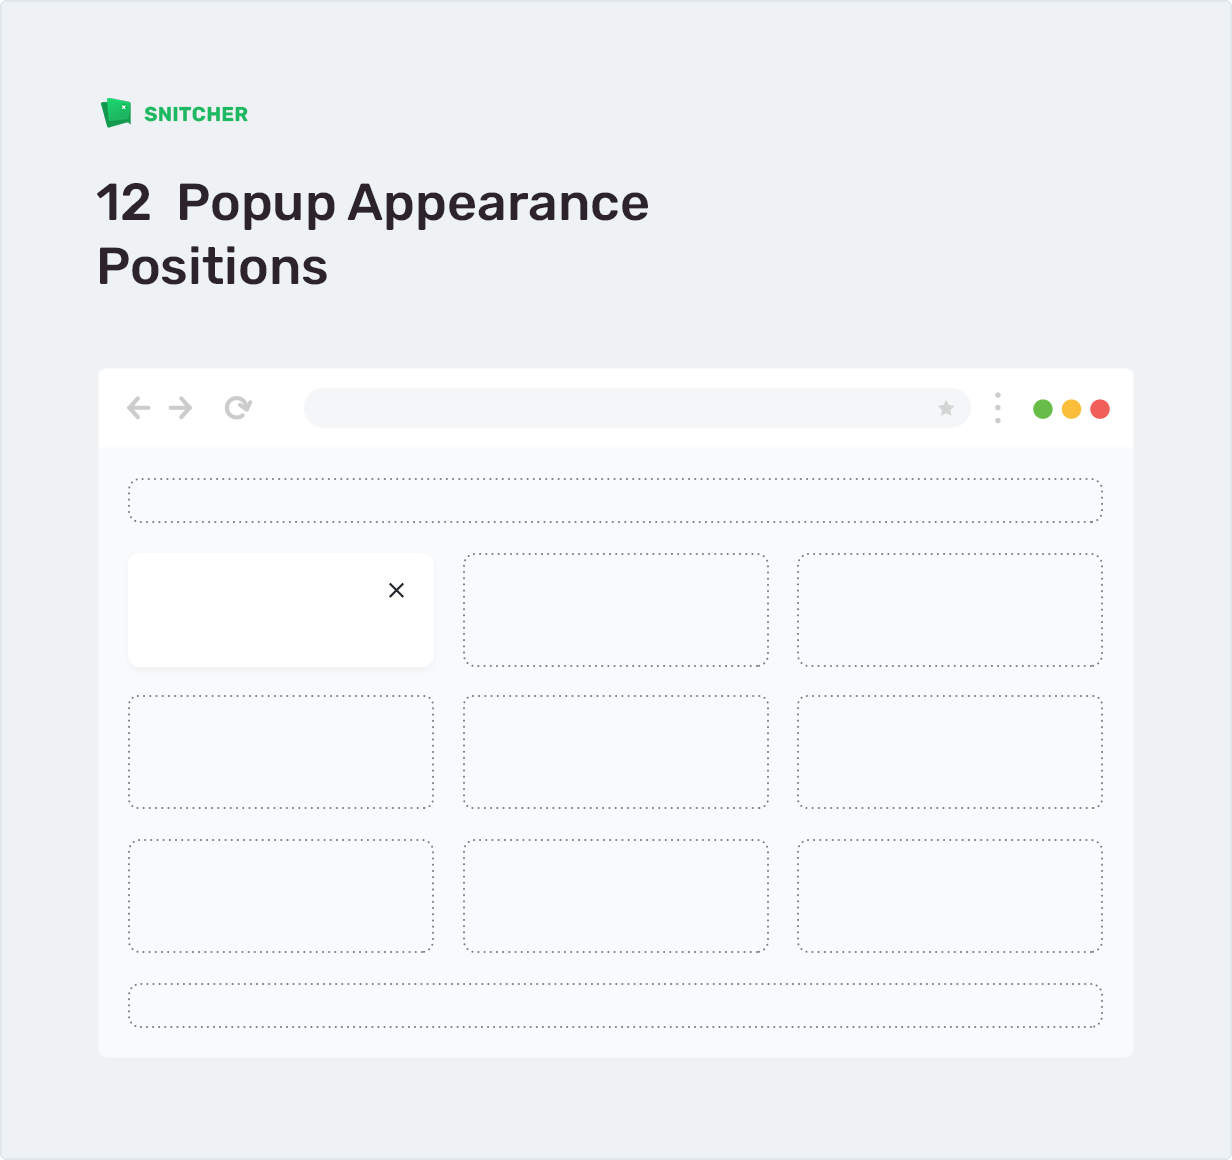 12 Popup Appearance Positions